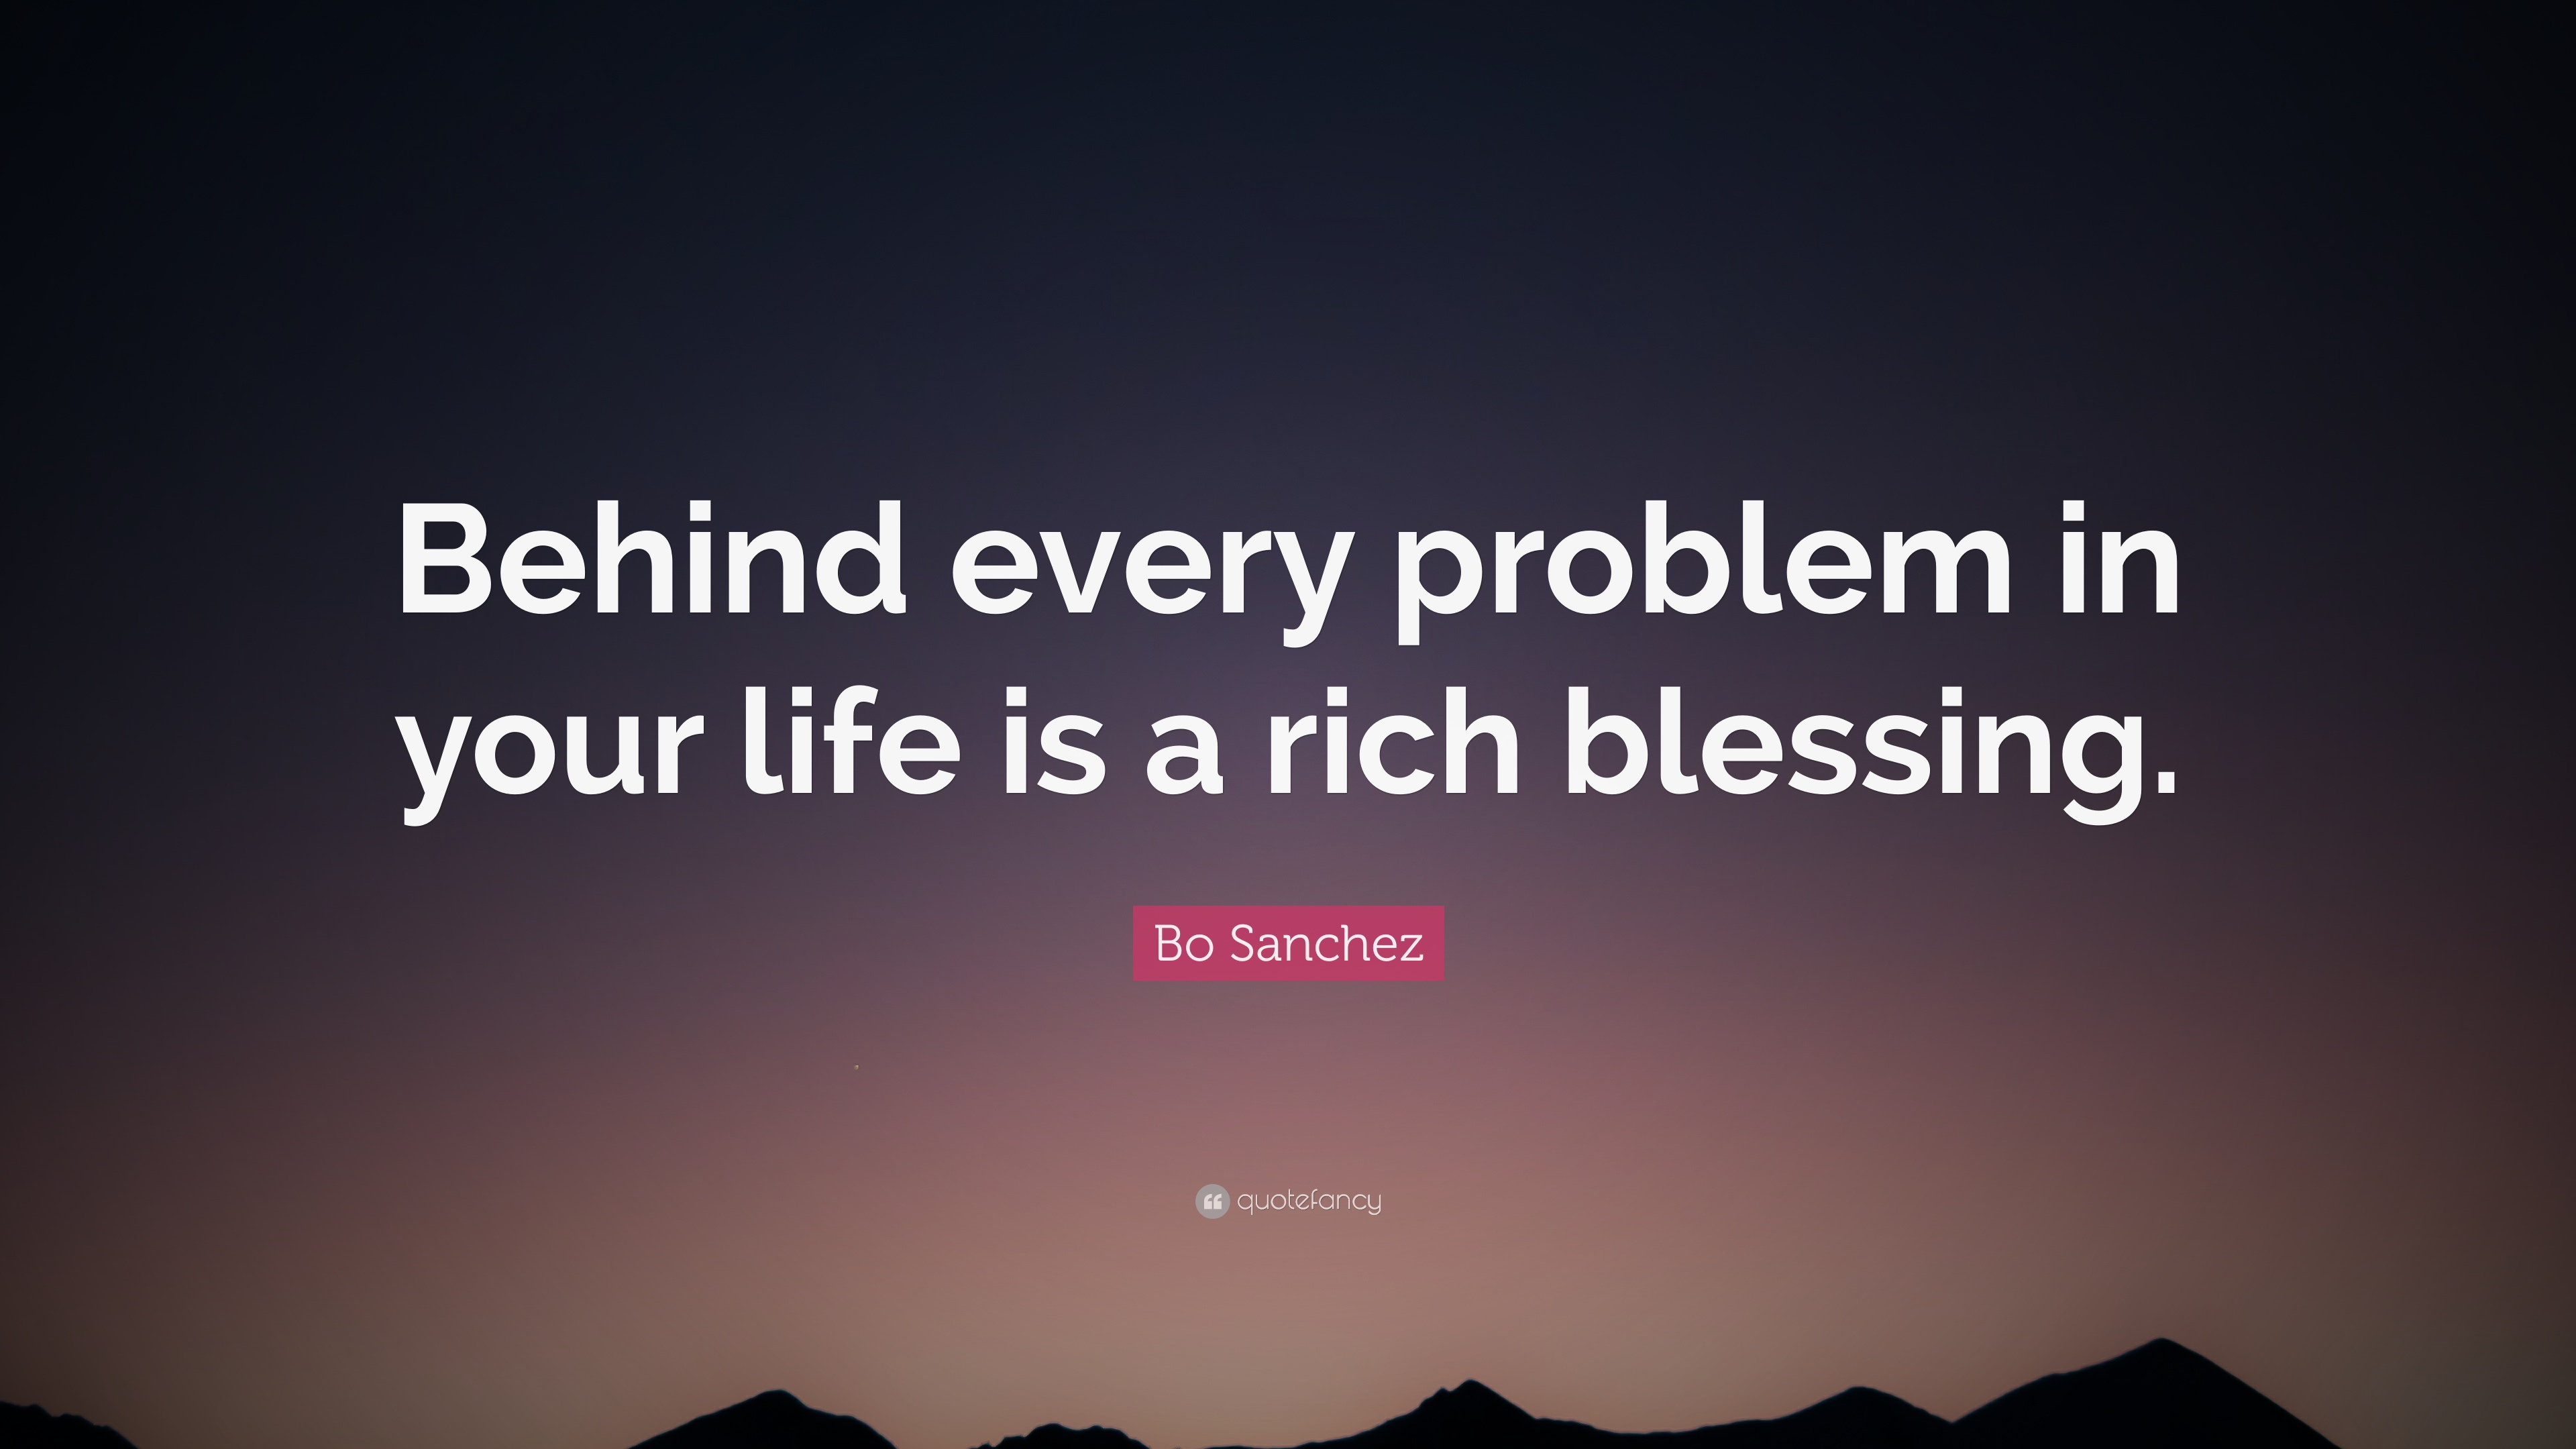 Bo Sanchez Quote Behind Every Problem In Your Life Is A Rich